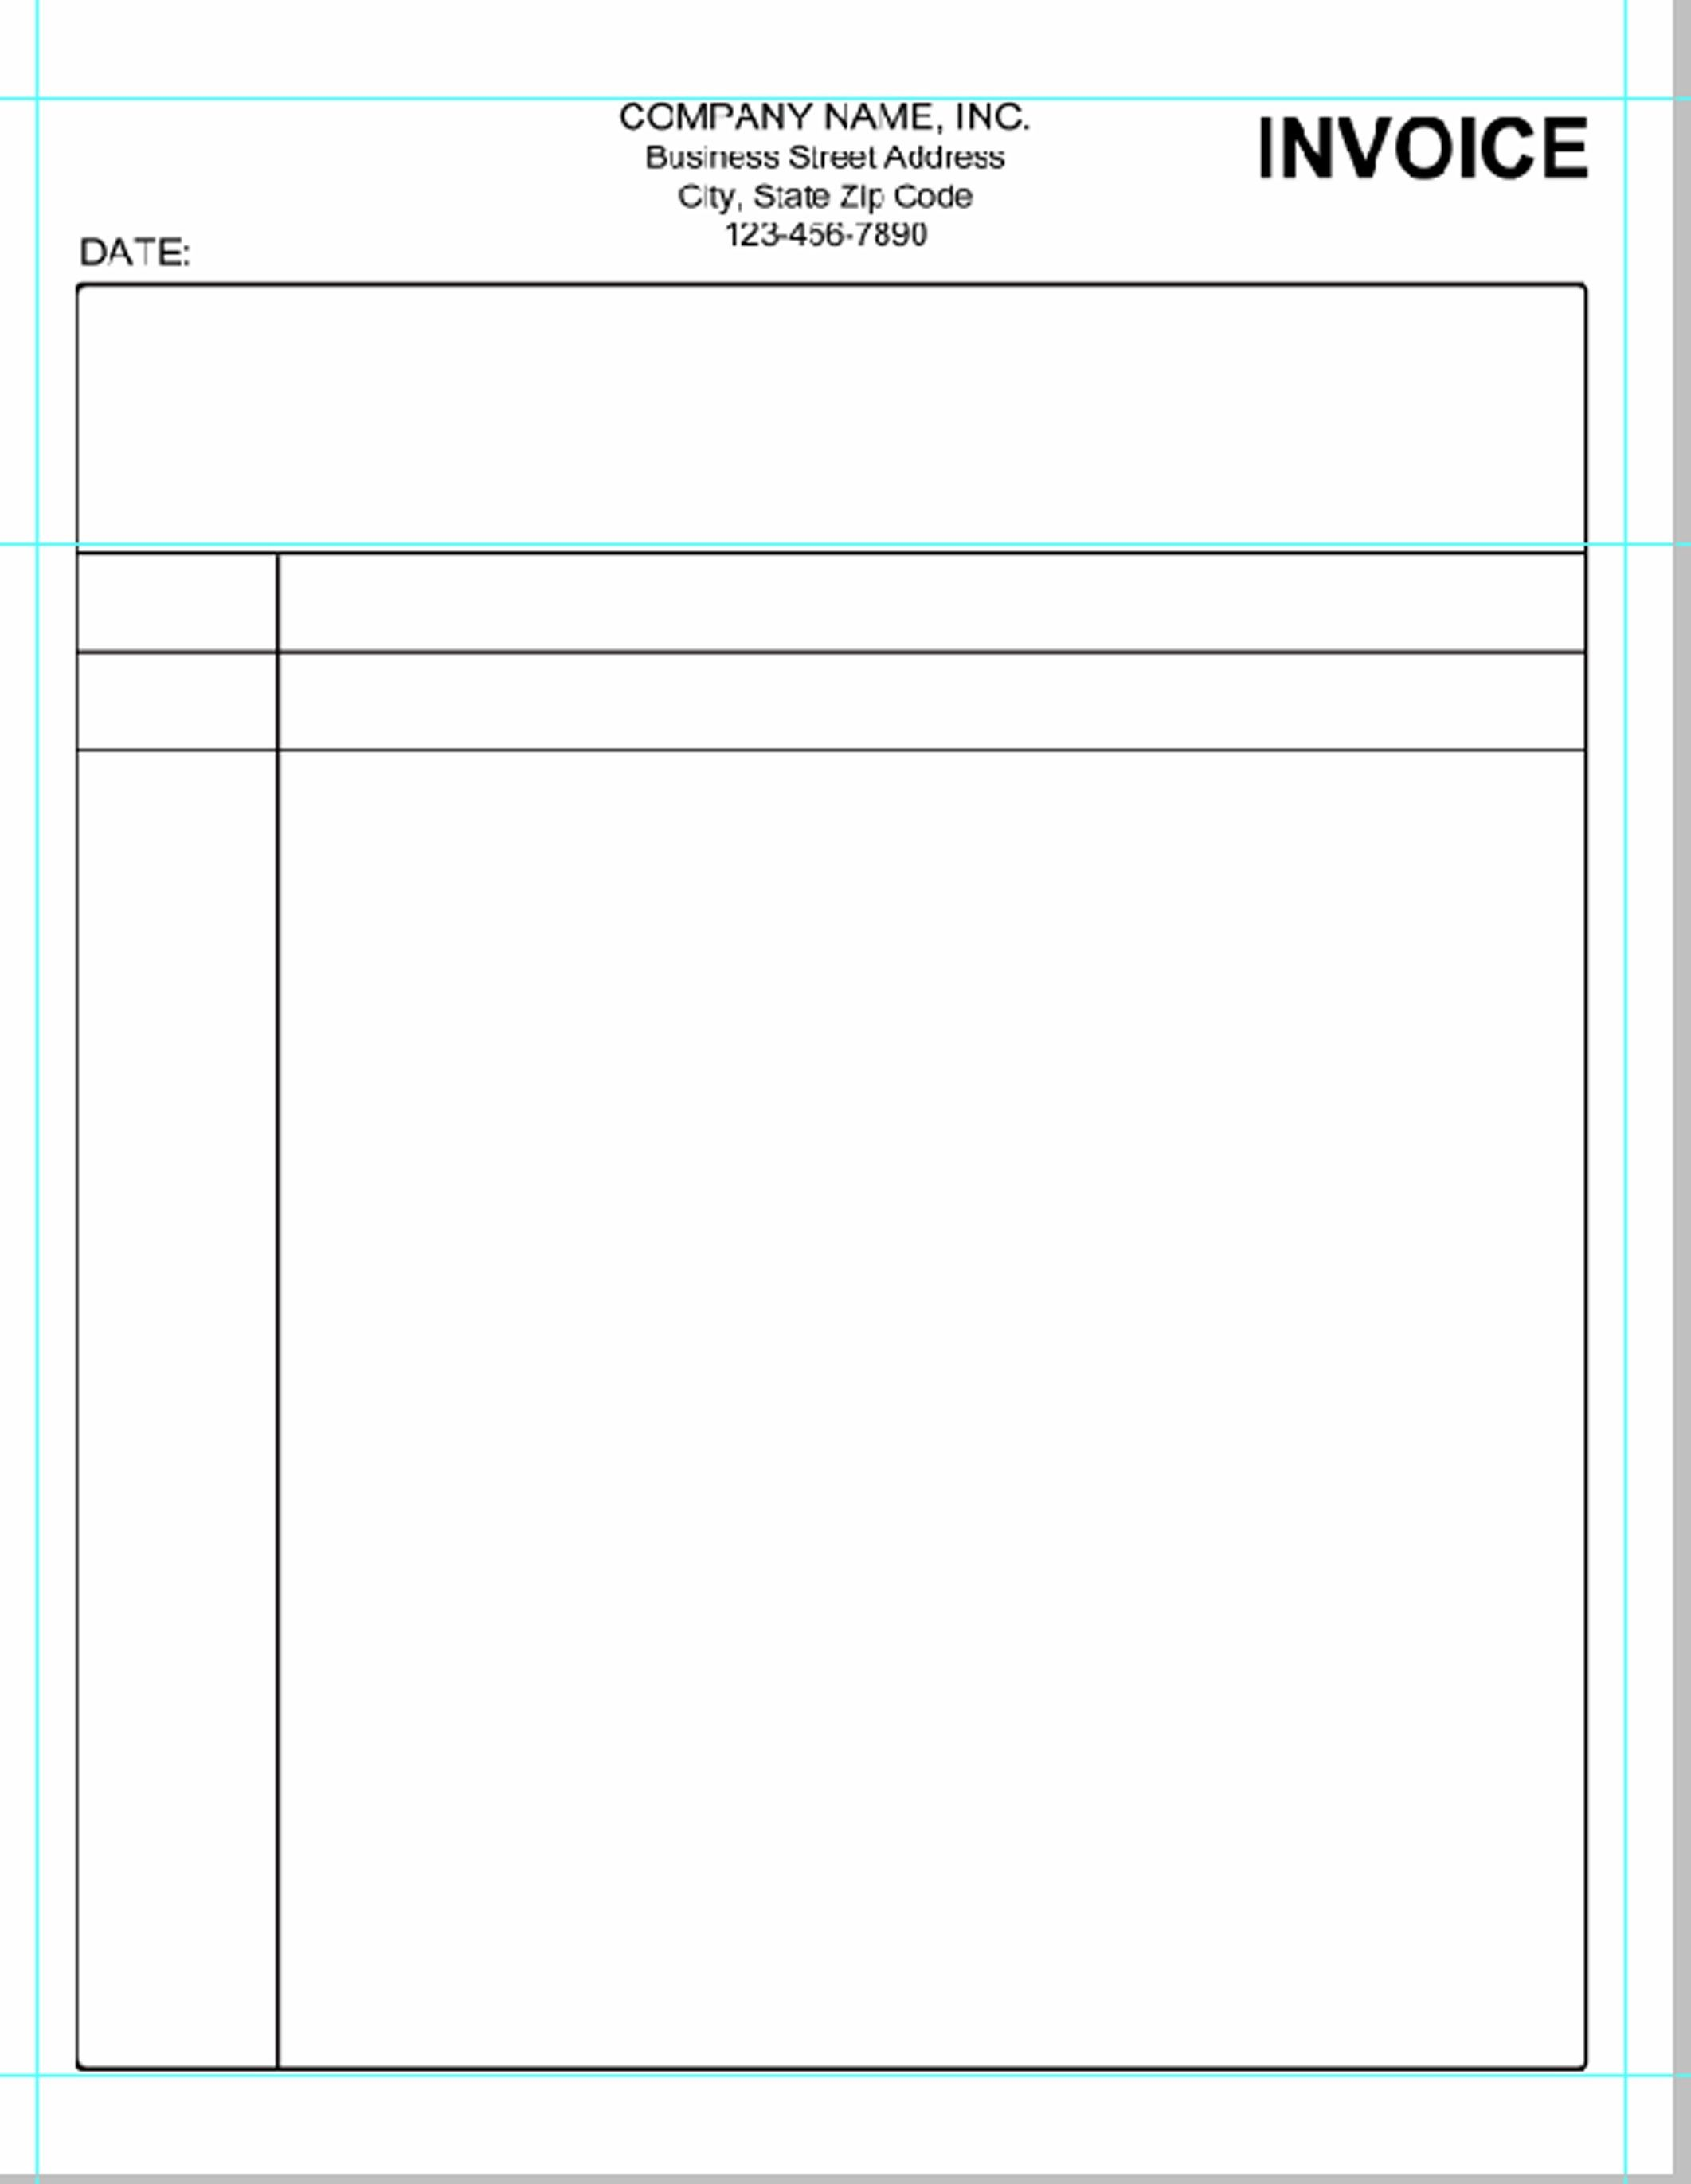 Blank Simple Invoice Template Word Free